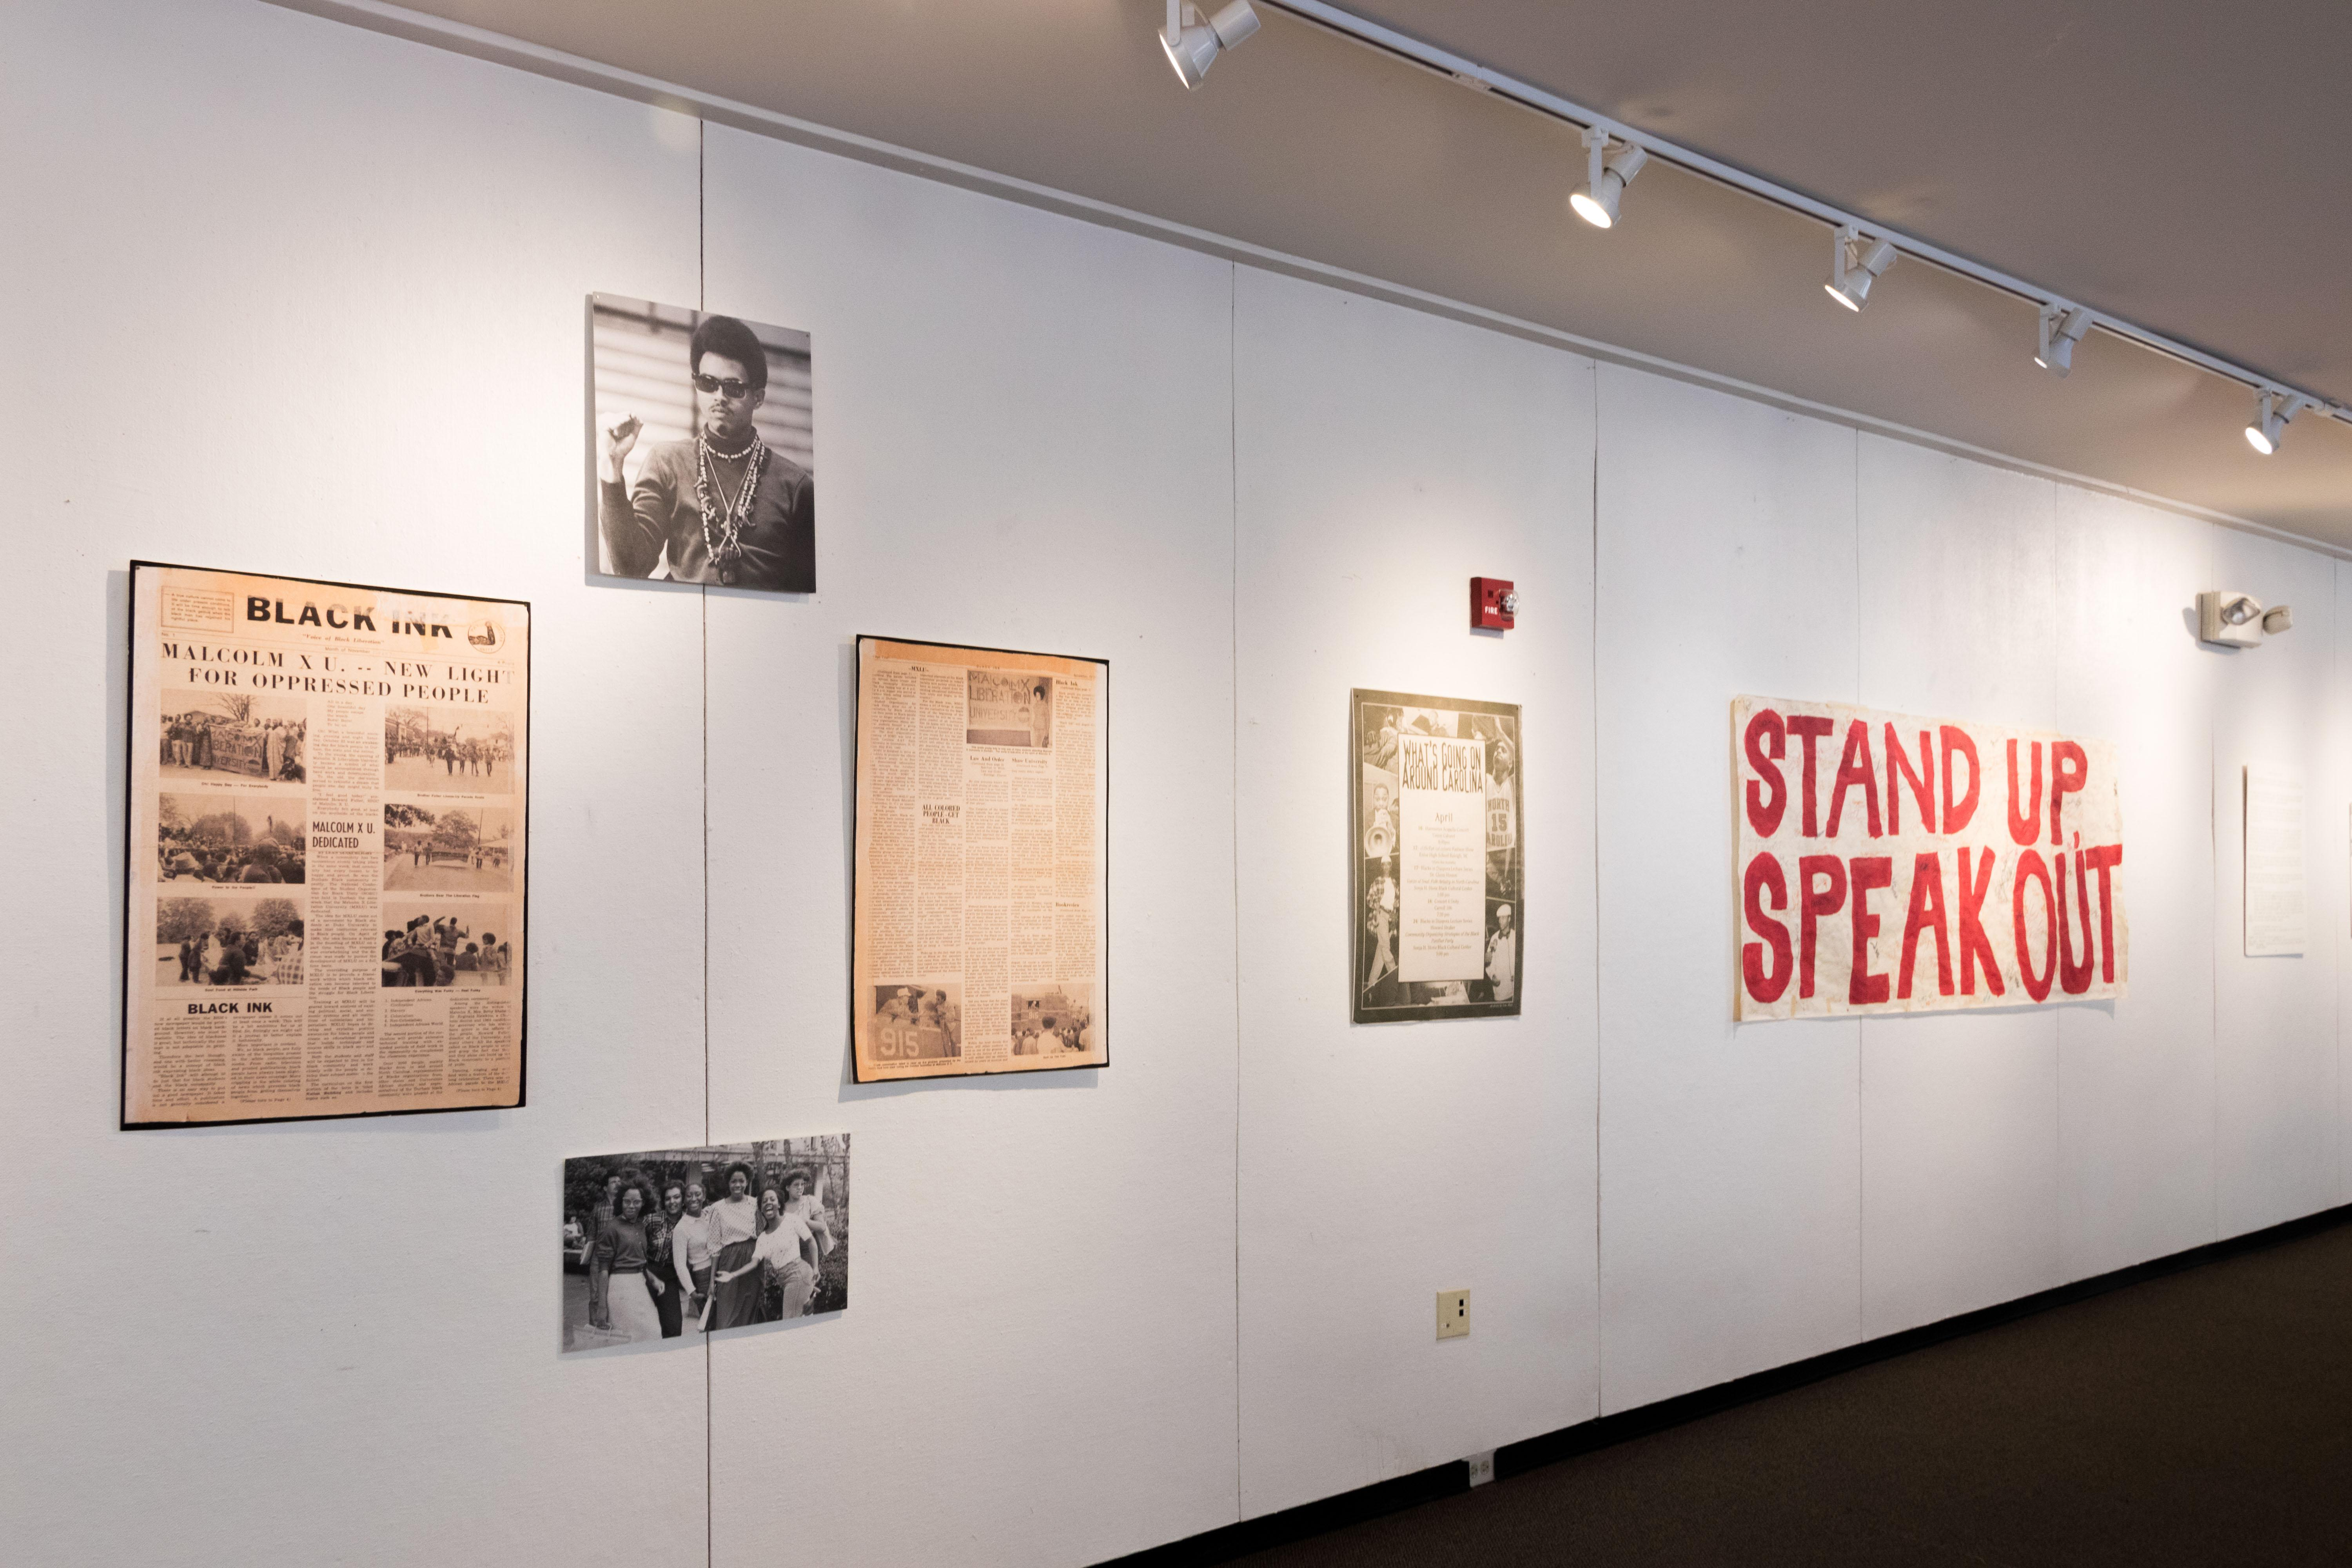 Black History Month Display in the Union Art Gallery